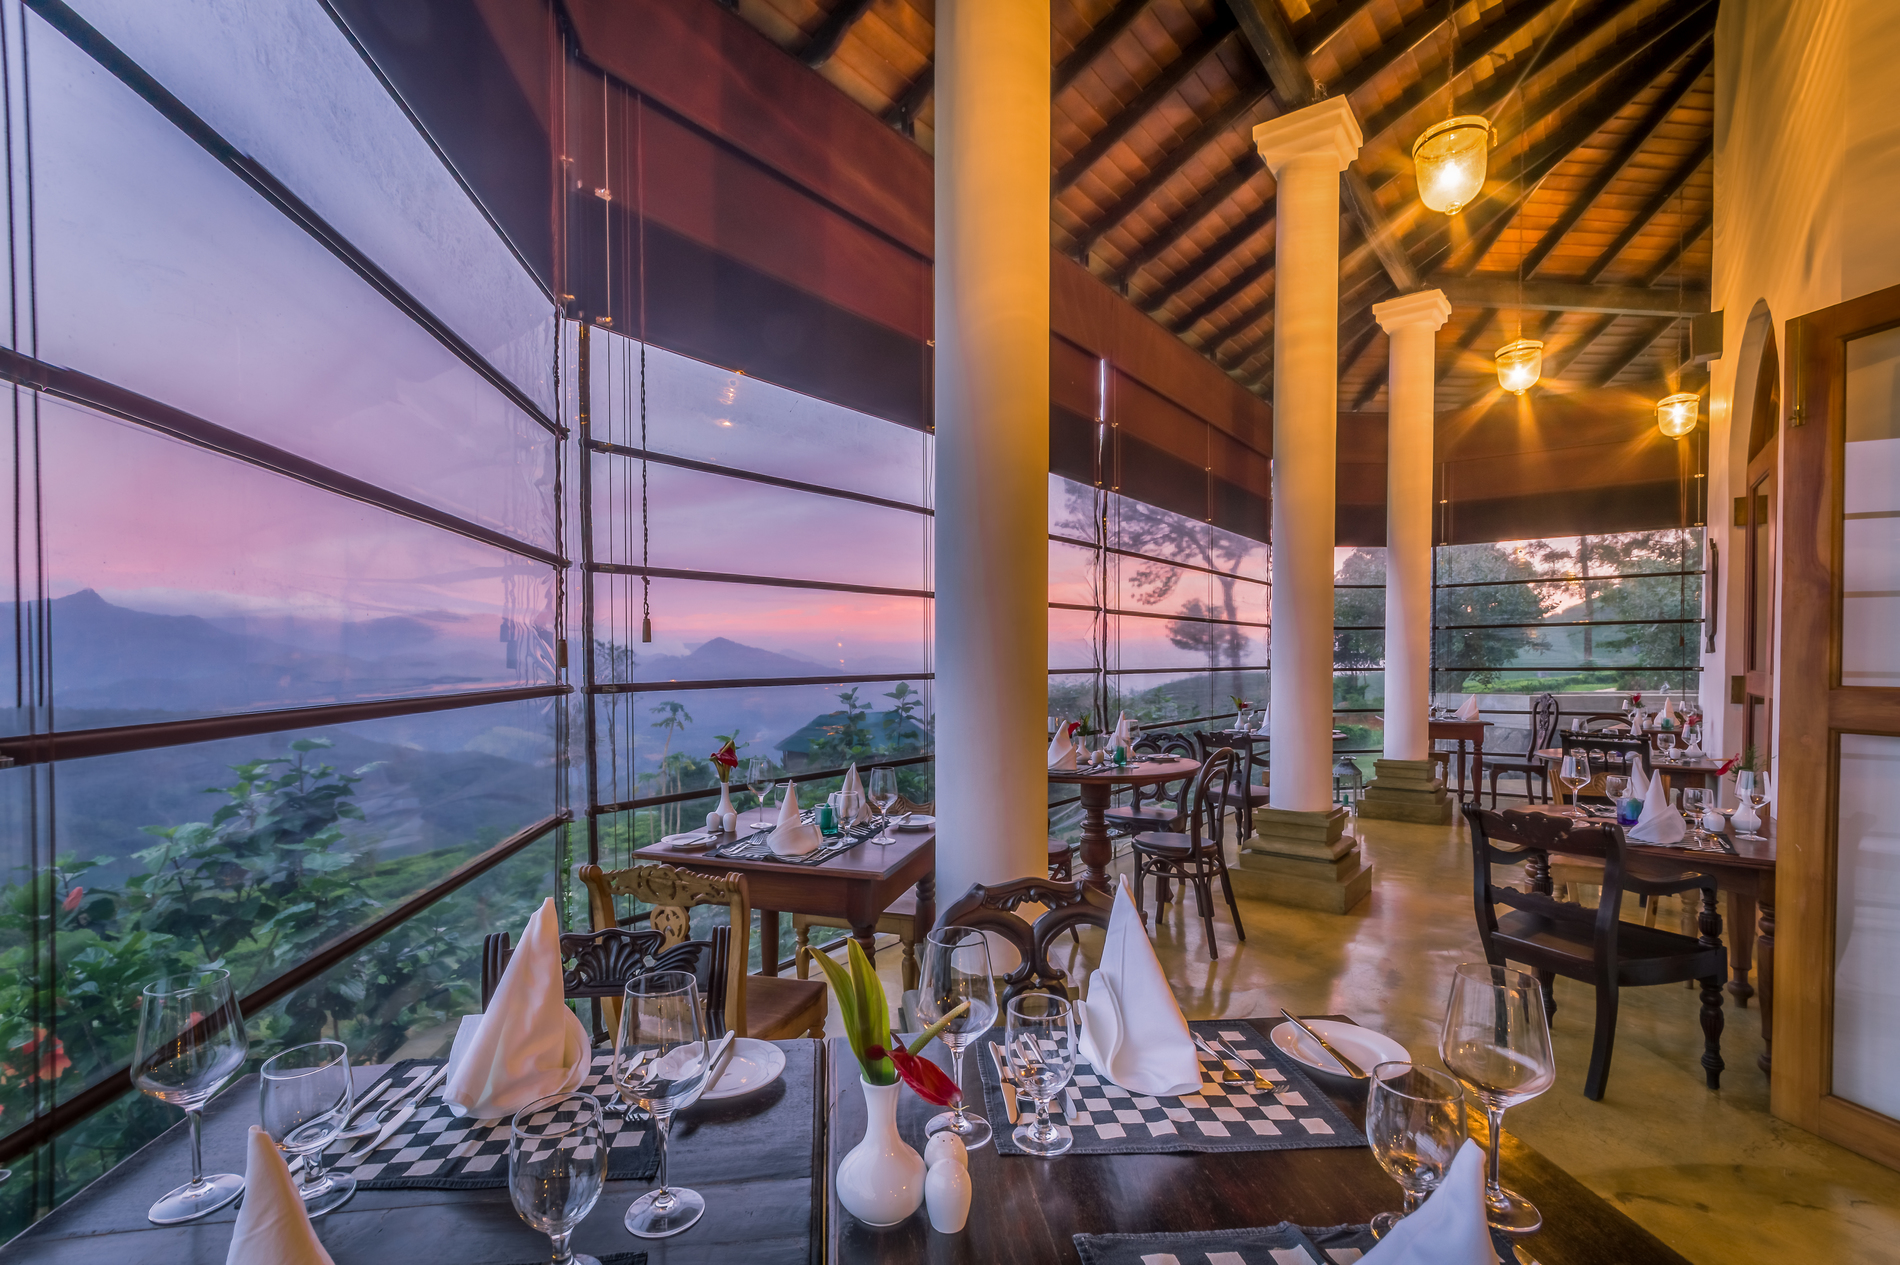 lkelle Tea & Eco Lodge 4 star Kandy Sri Lanka restaurant with view